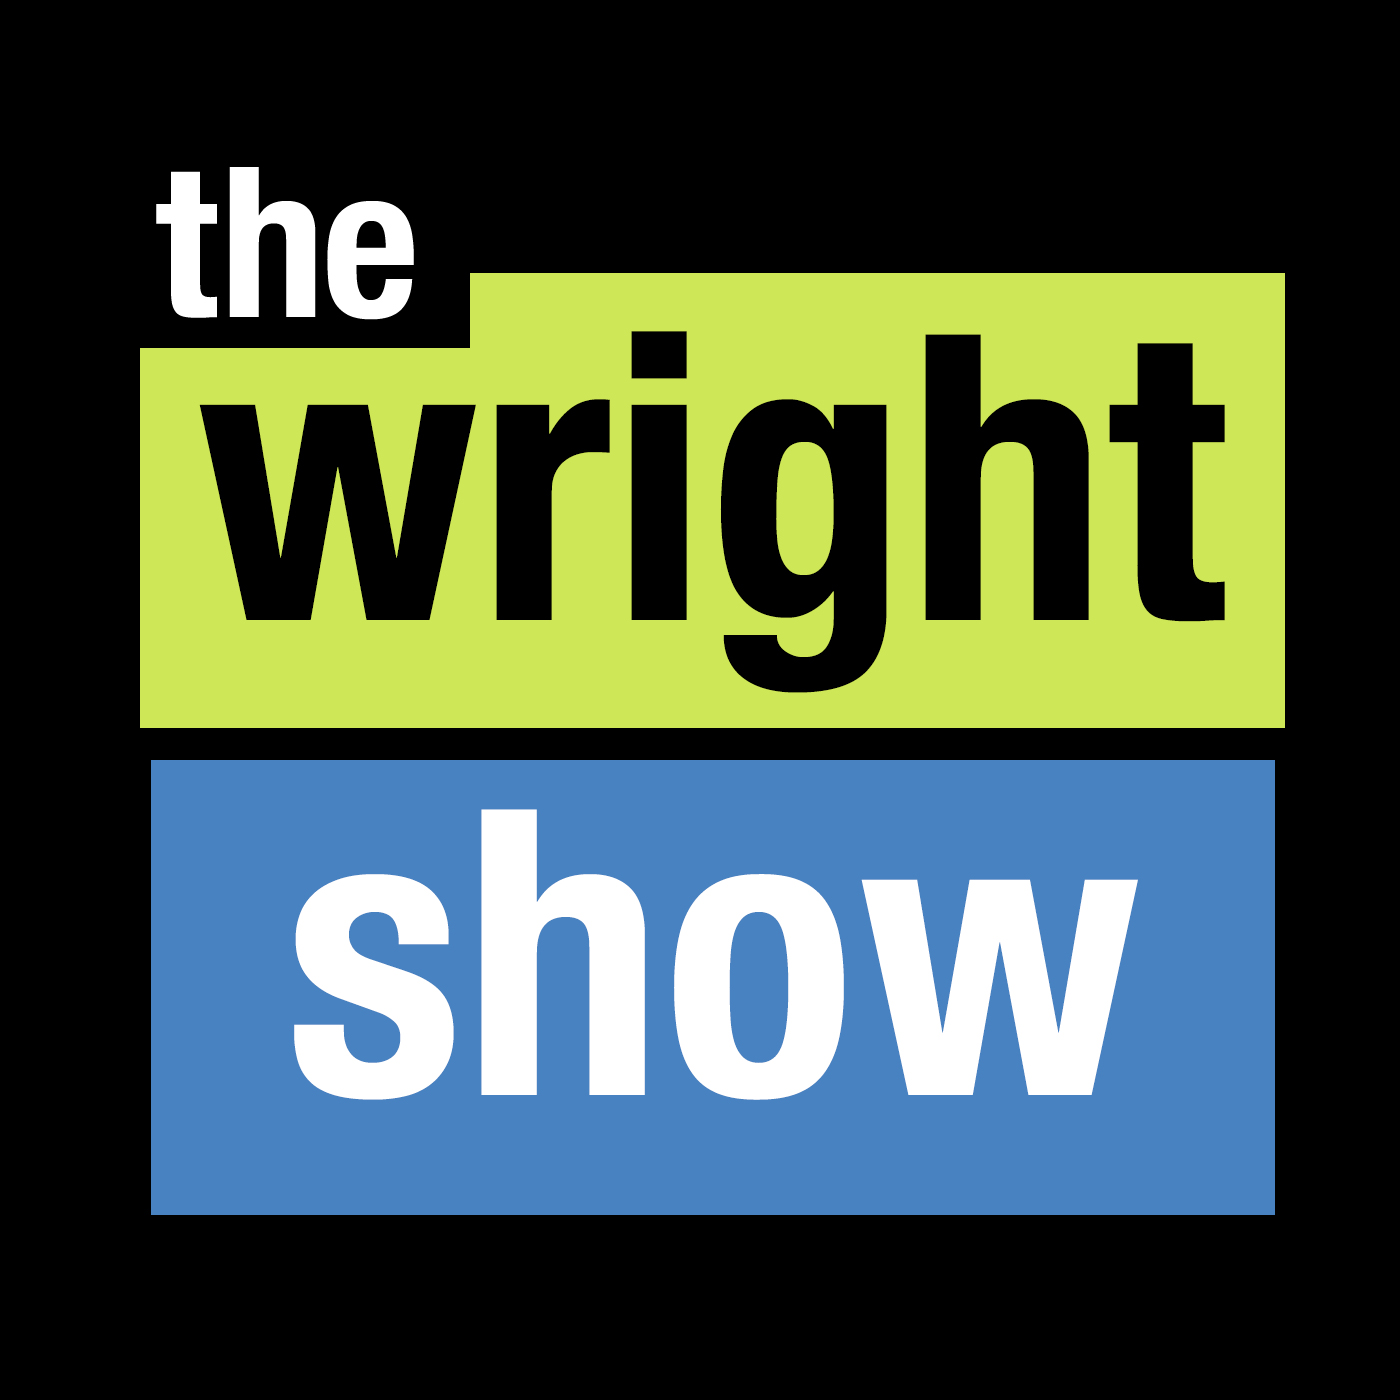 BhTV: The Wright Show (video)